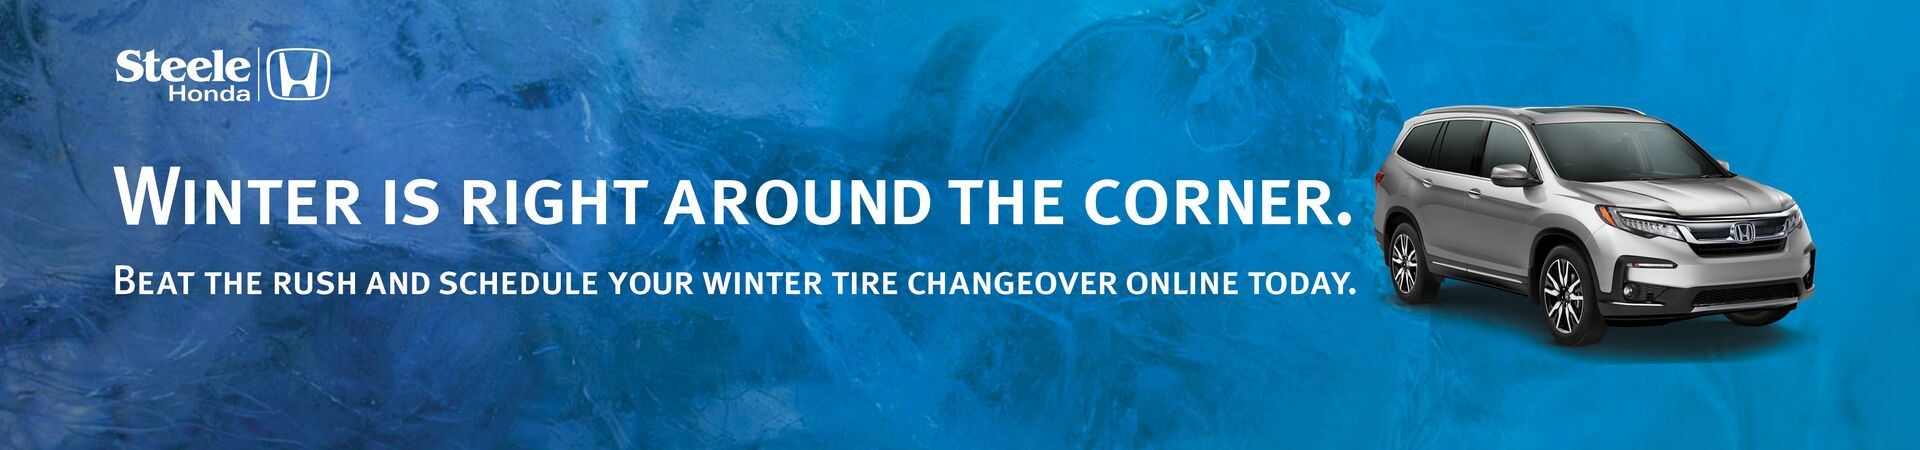 Winter Tire Changeover